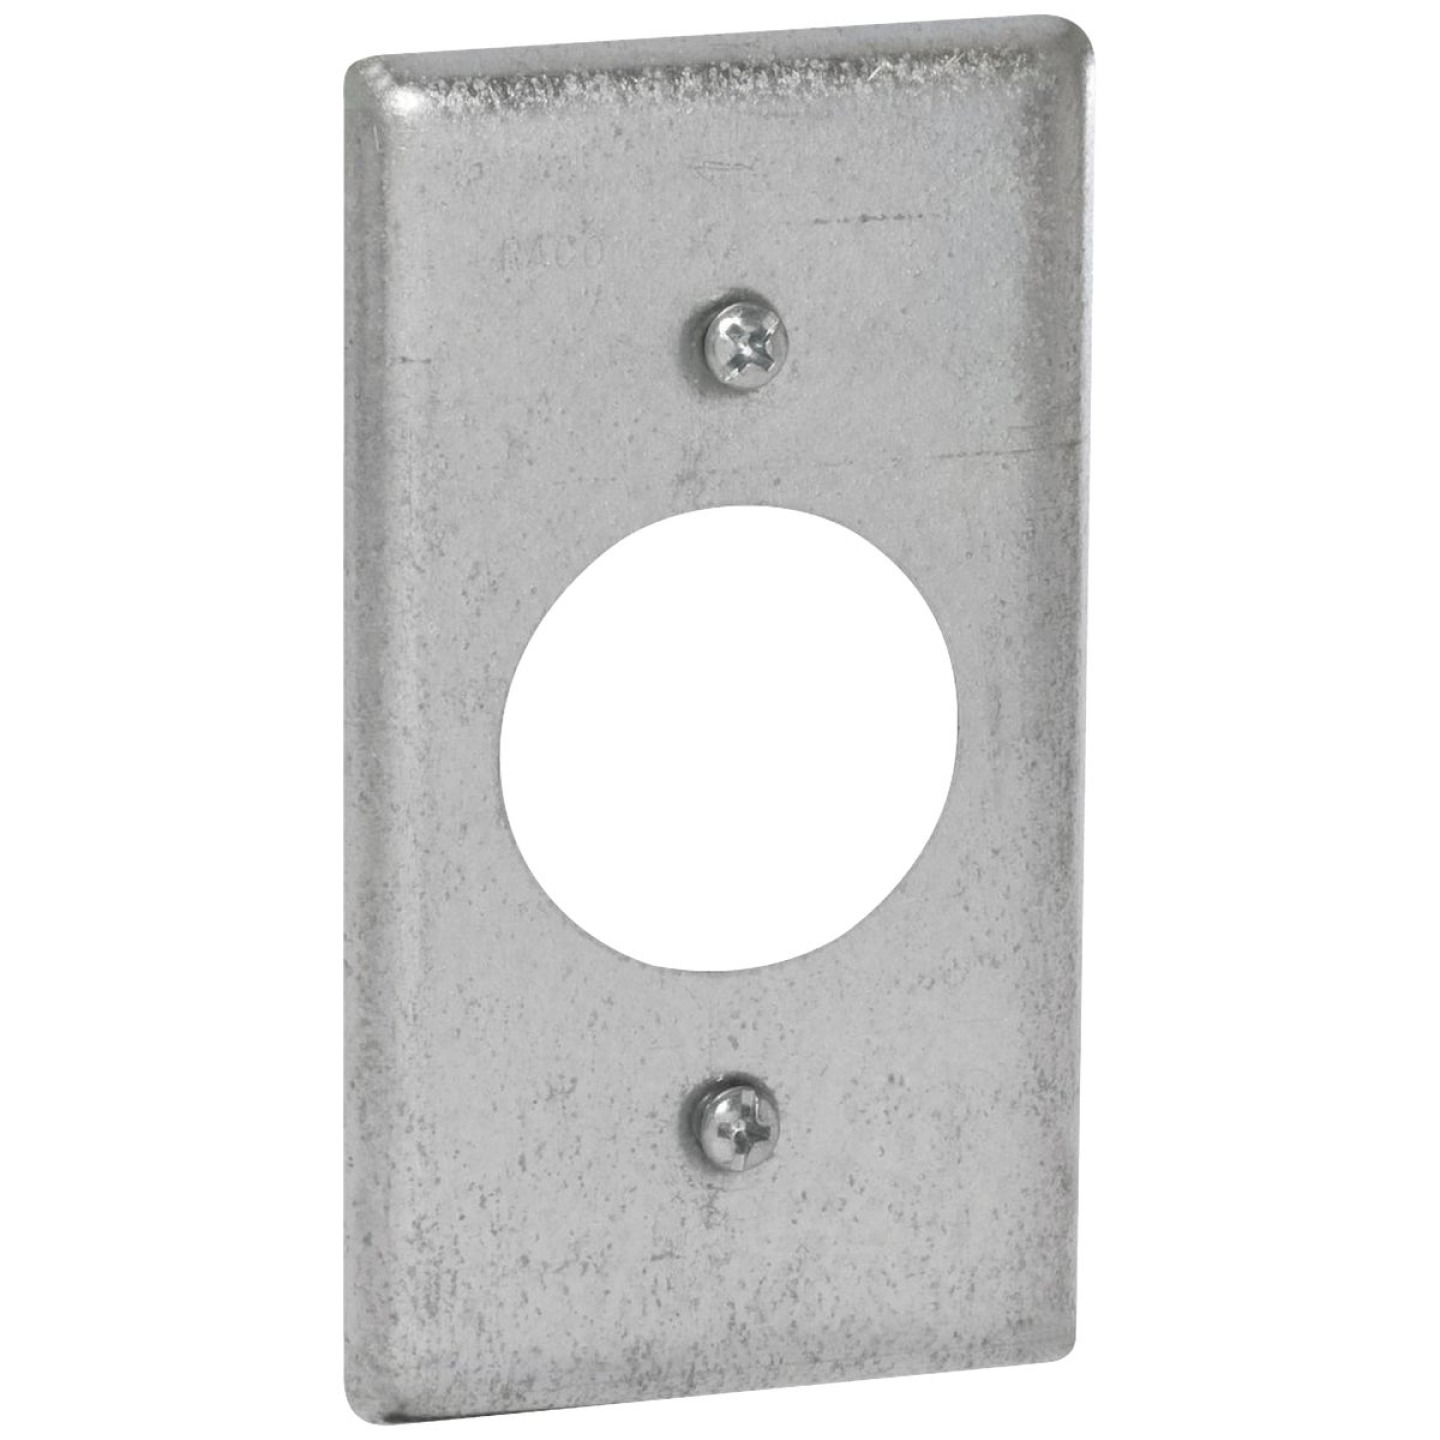 Raco Single Receptacle 4 In. x 2-1/8 In. Handy Box Cover Image 1